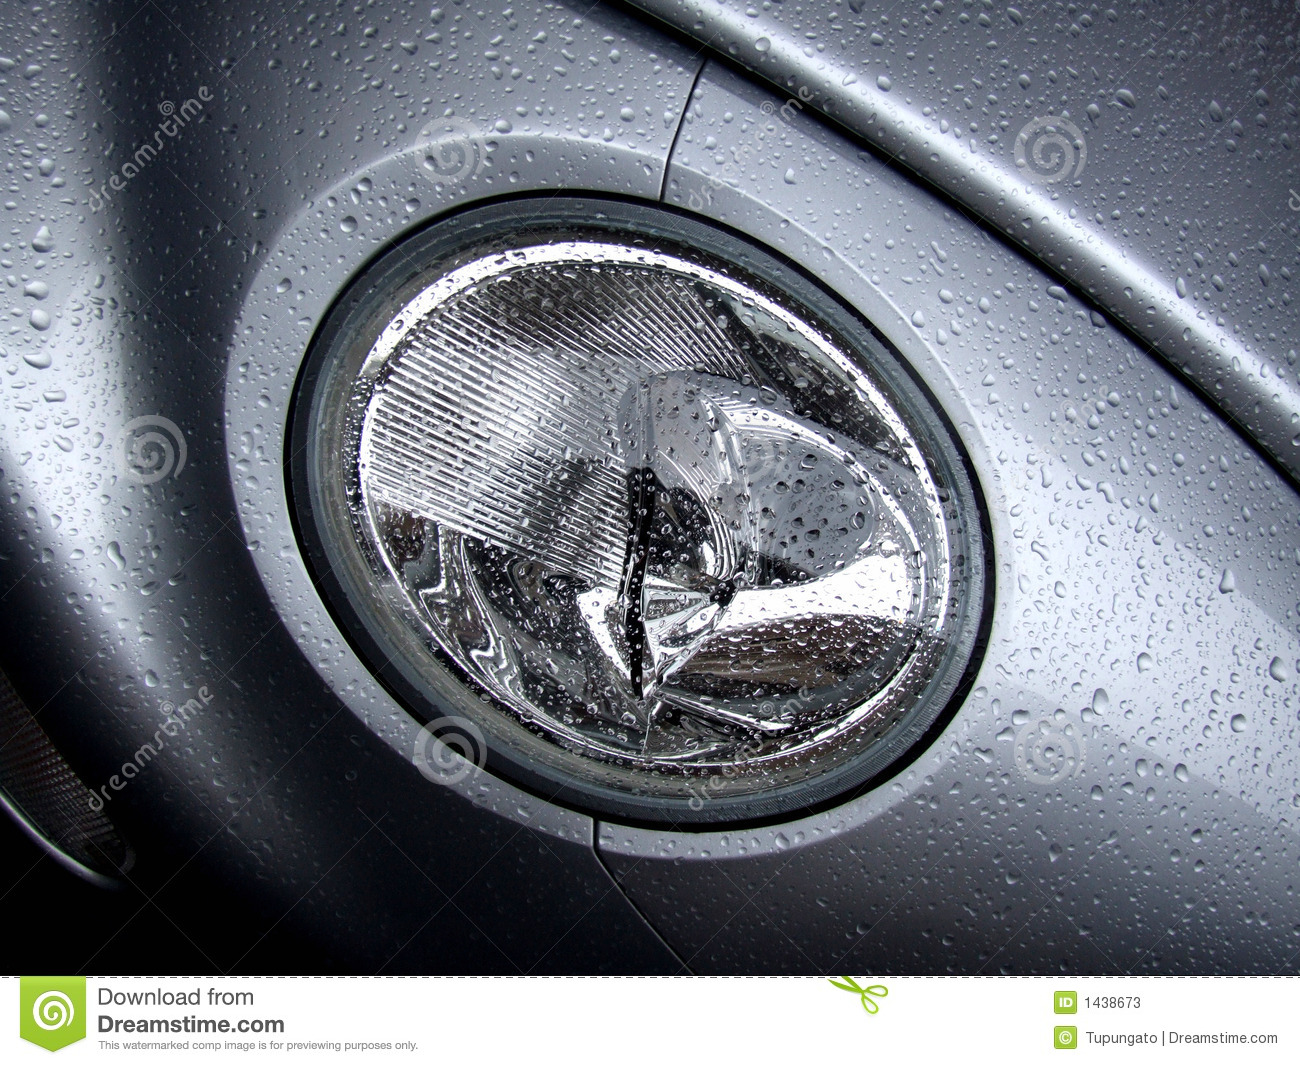 New Silver Car Lamp With Water Drops Stock Image - Image: 1438673